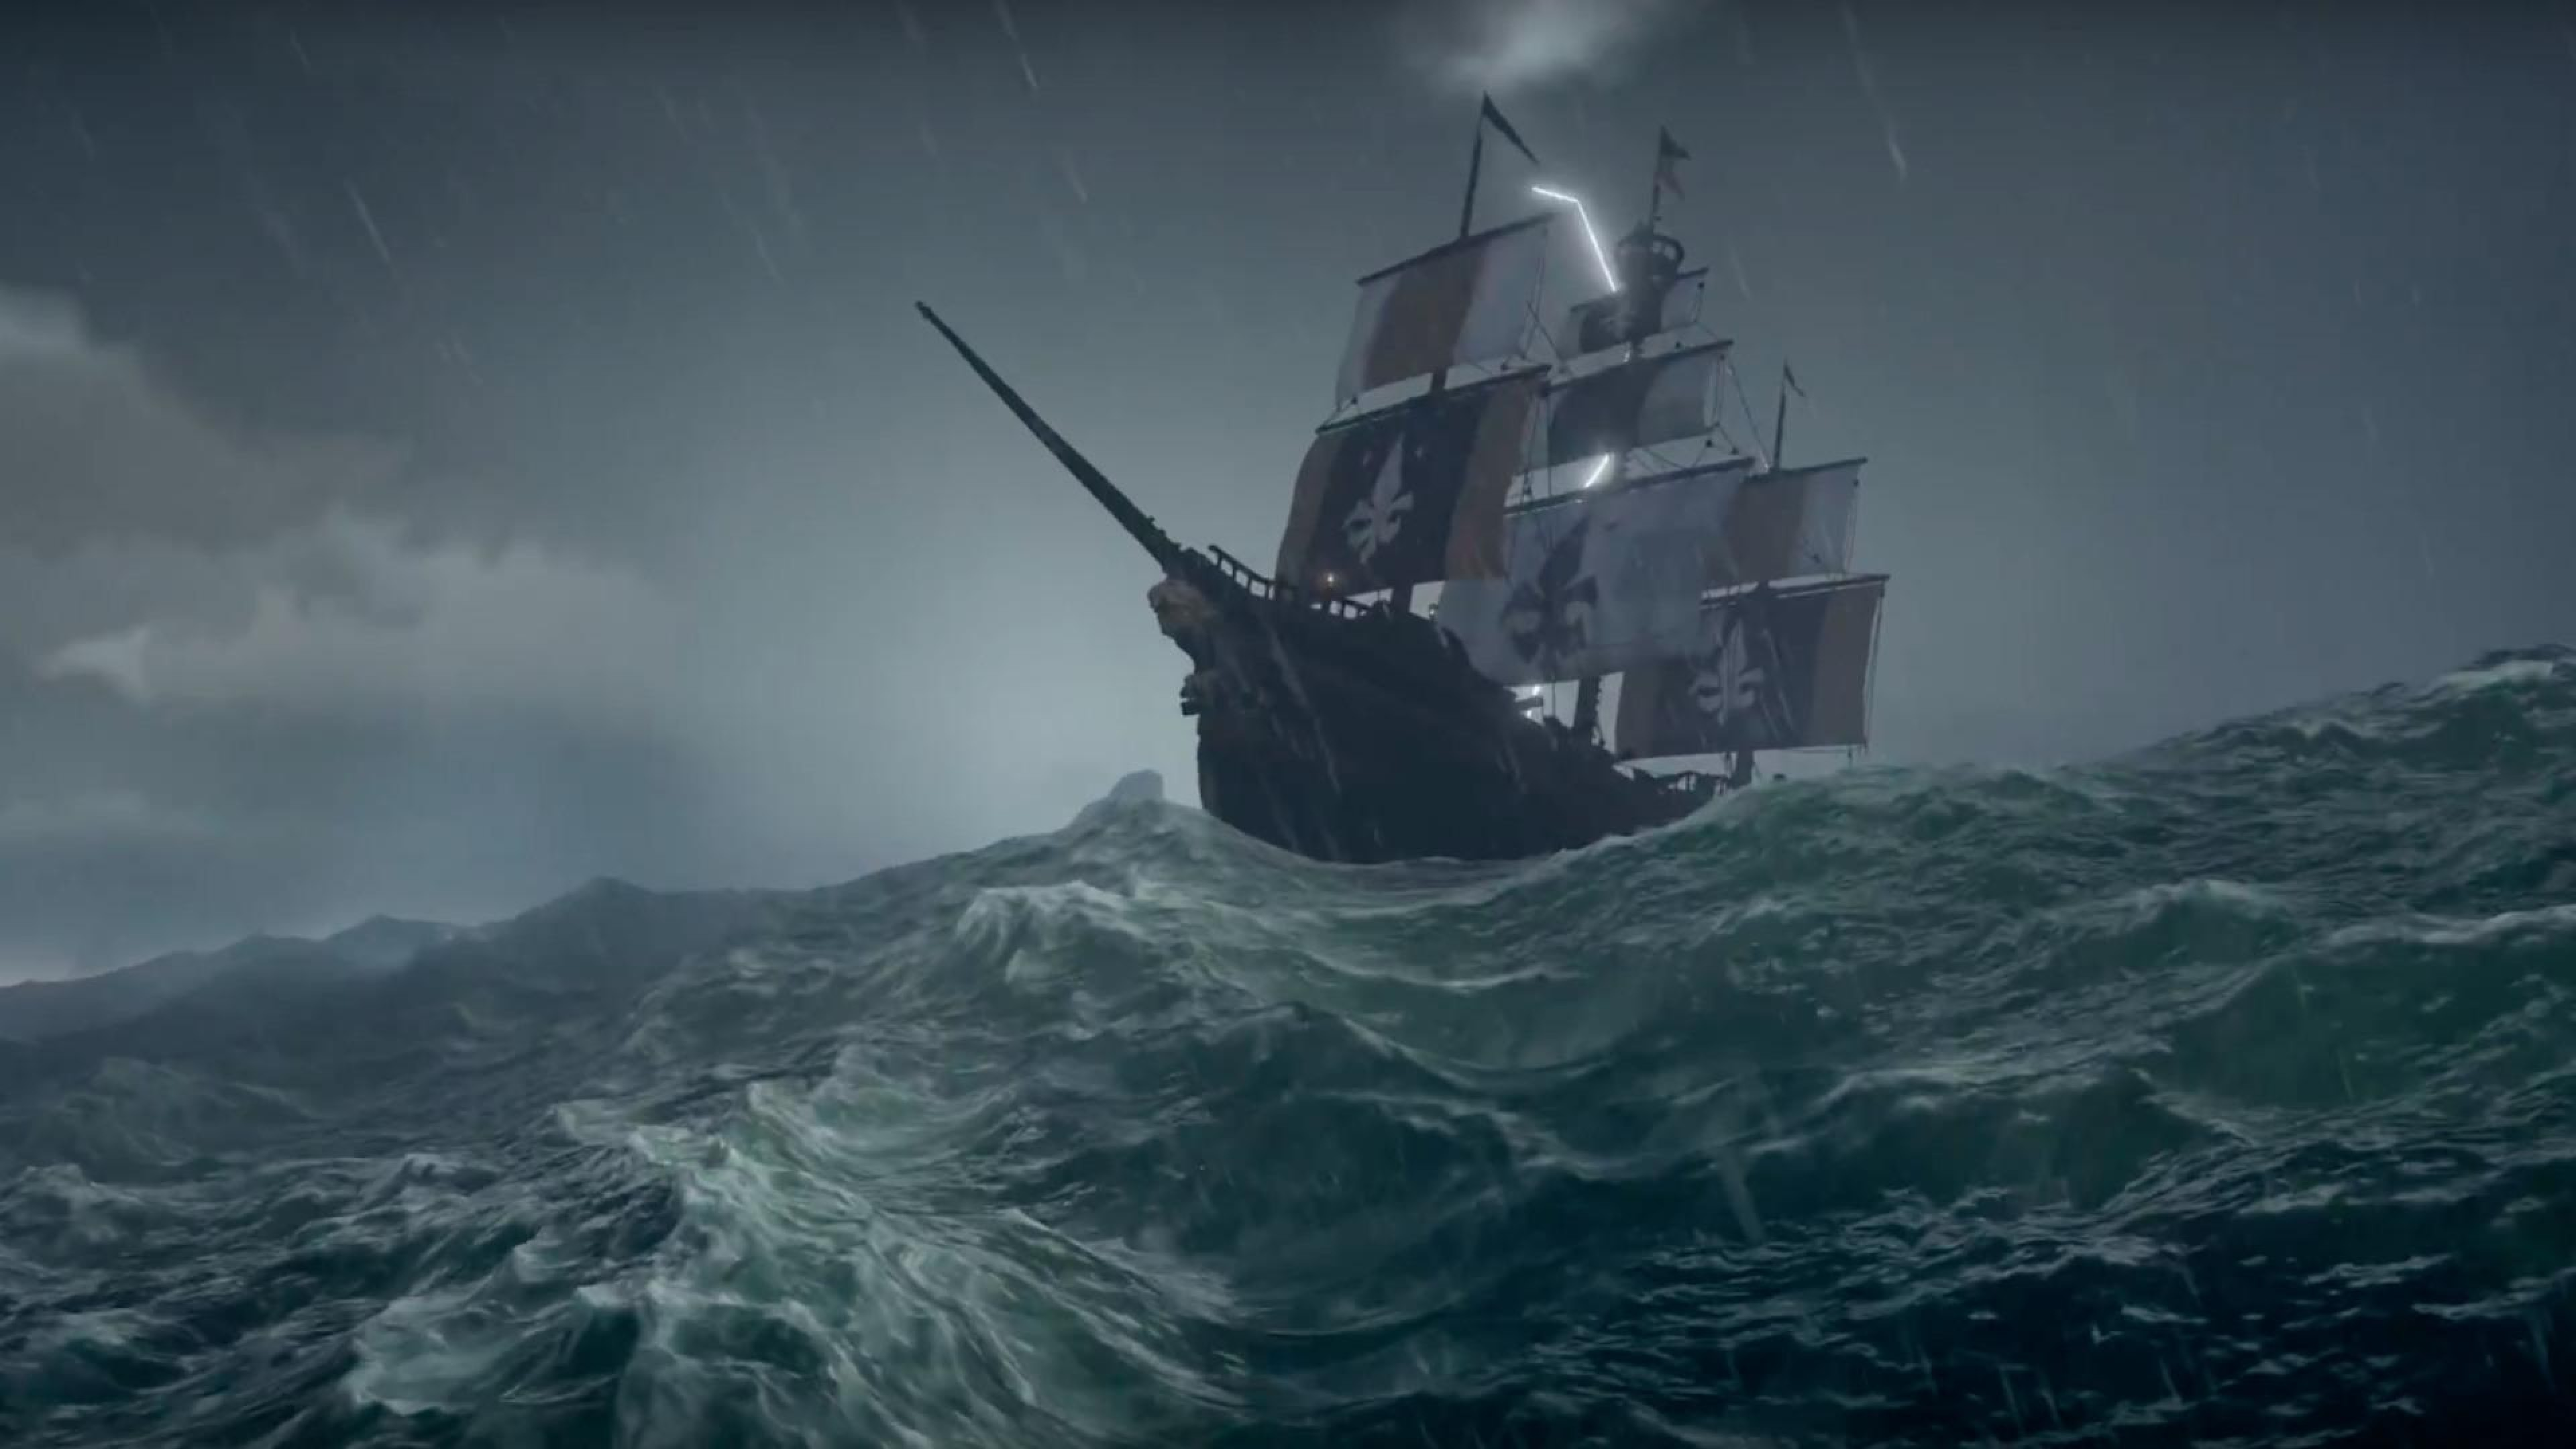 Sea Of Thieves Wallpaper Hd Posted By Ethan Walker